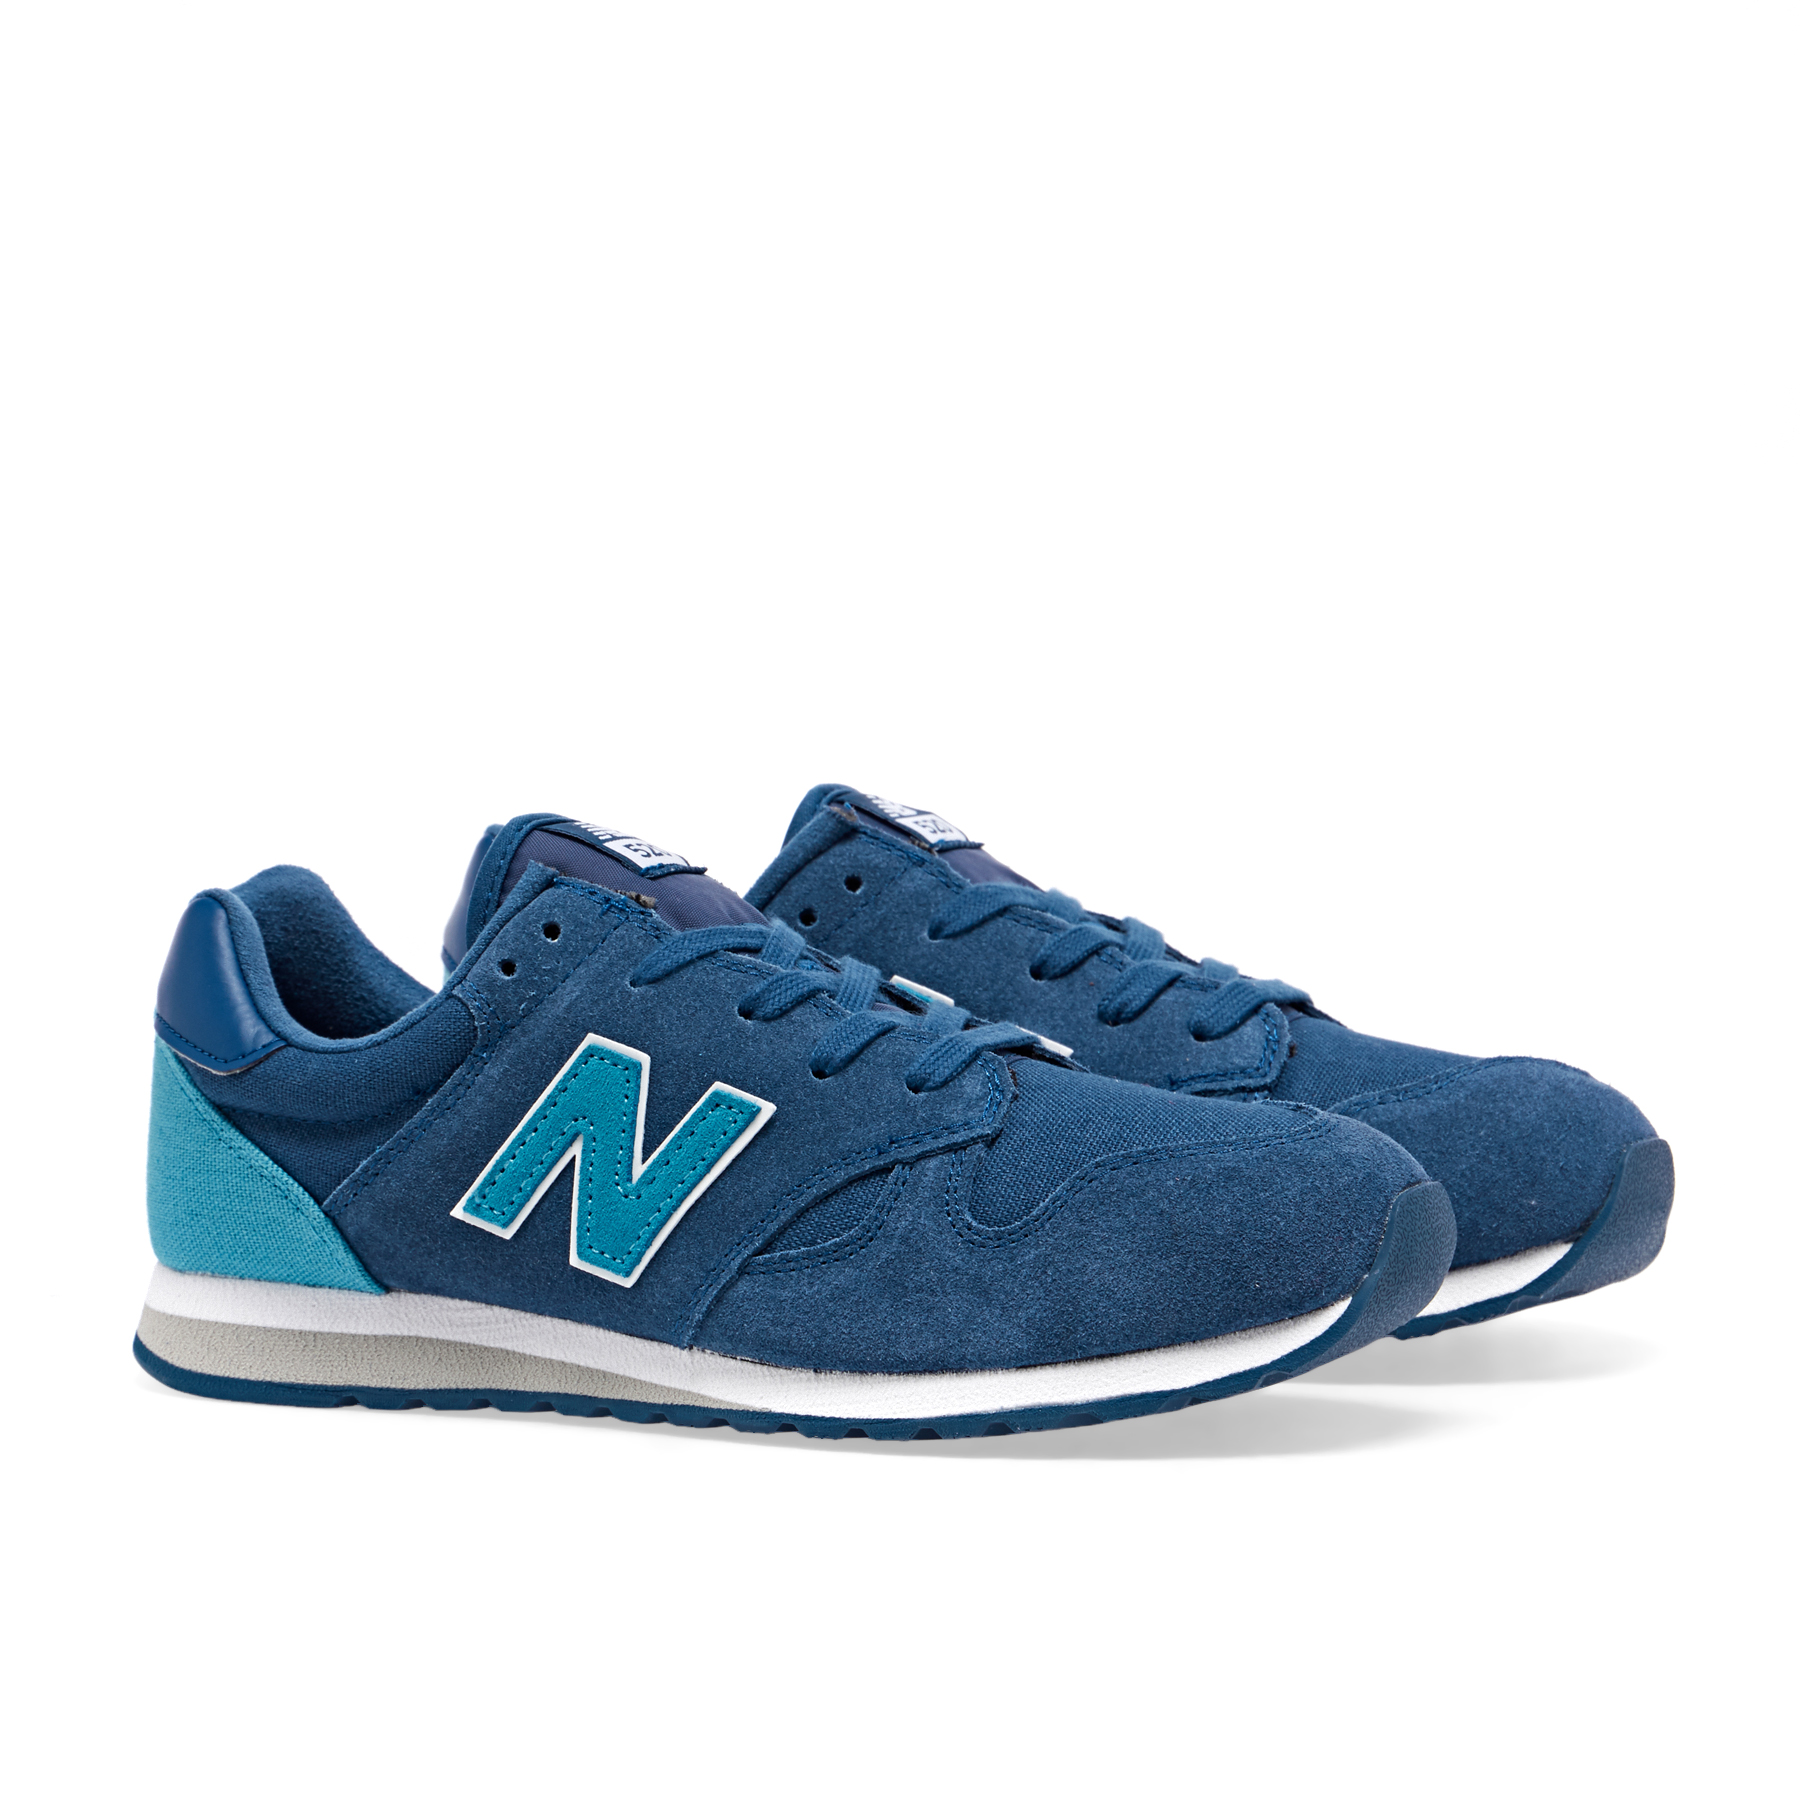 520 new balance enfant